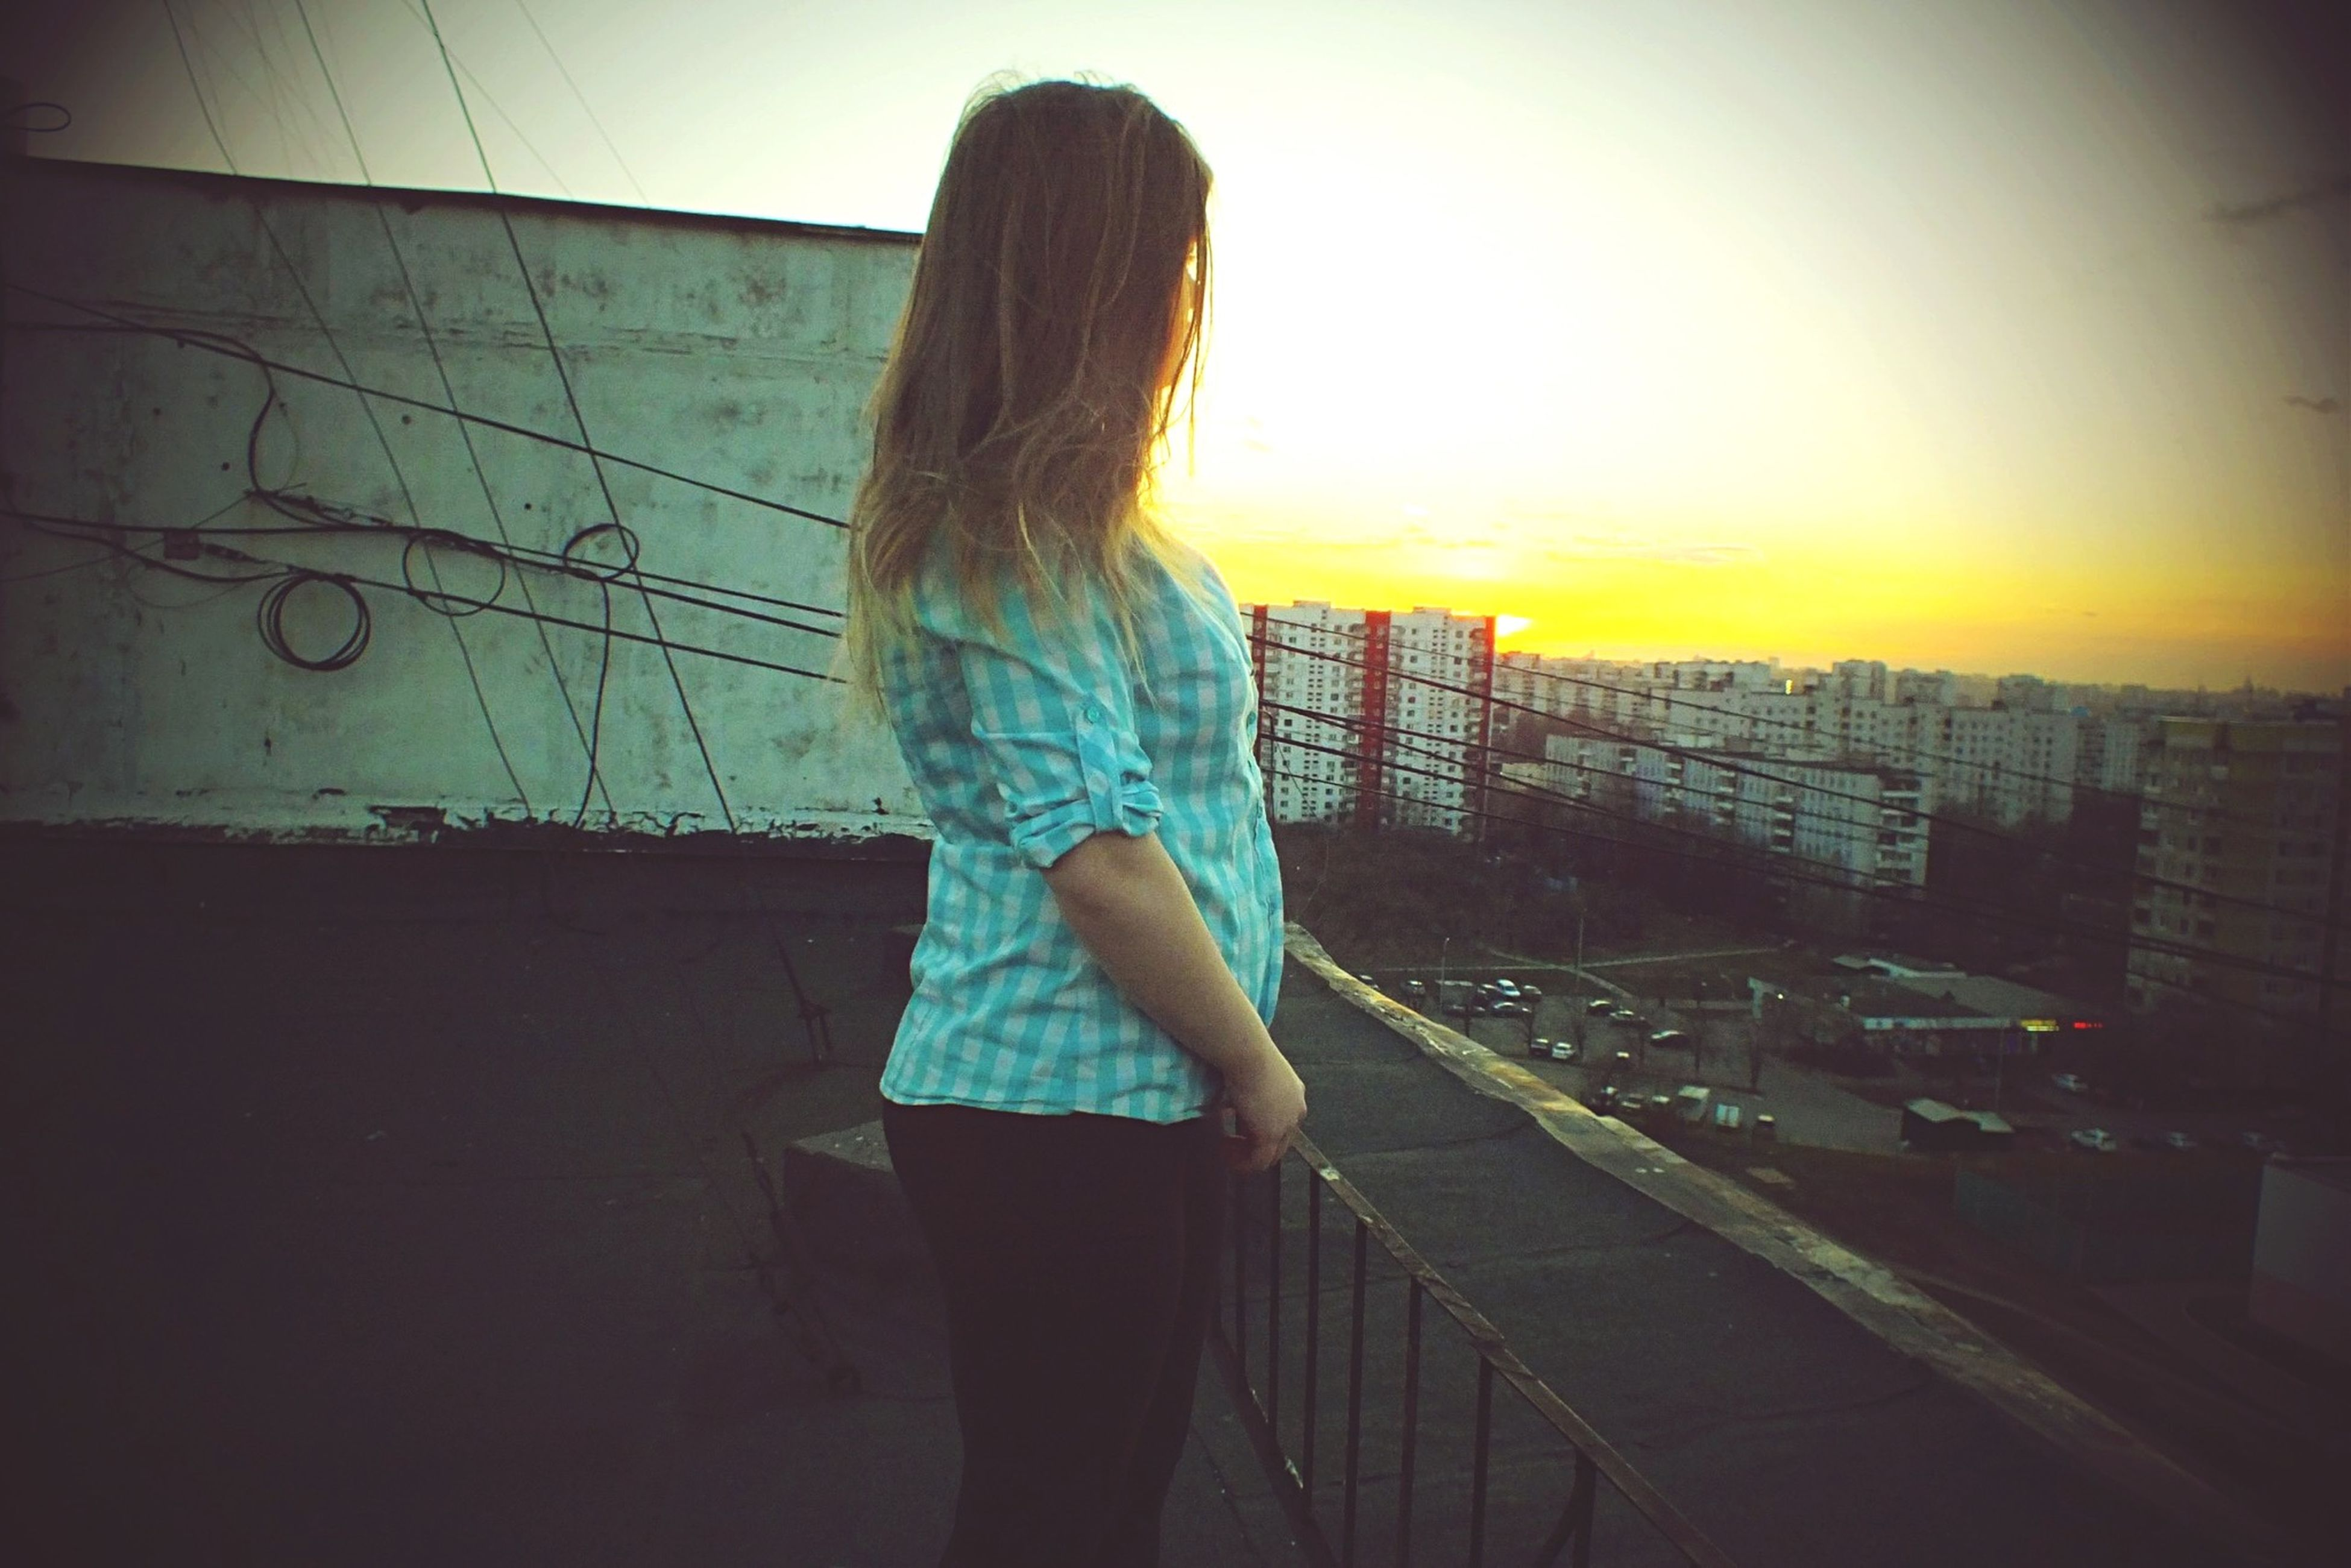 lifestyles, standing, leisure activity, casual clothing, full length, rear view, young women, built structure, architecture, young adult, person, building exterior, three quarter length, long hair, sunlight, city, side view, sunset